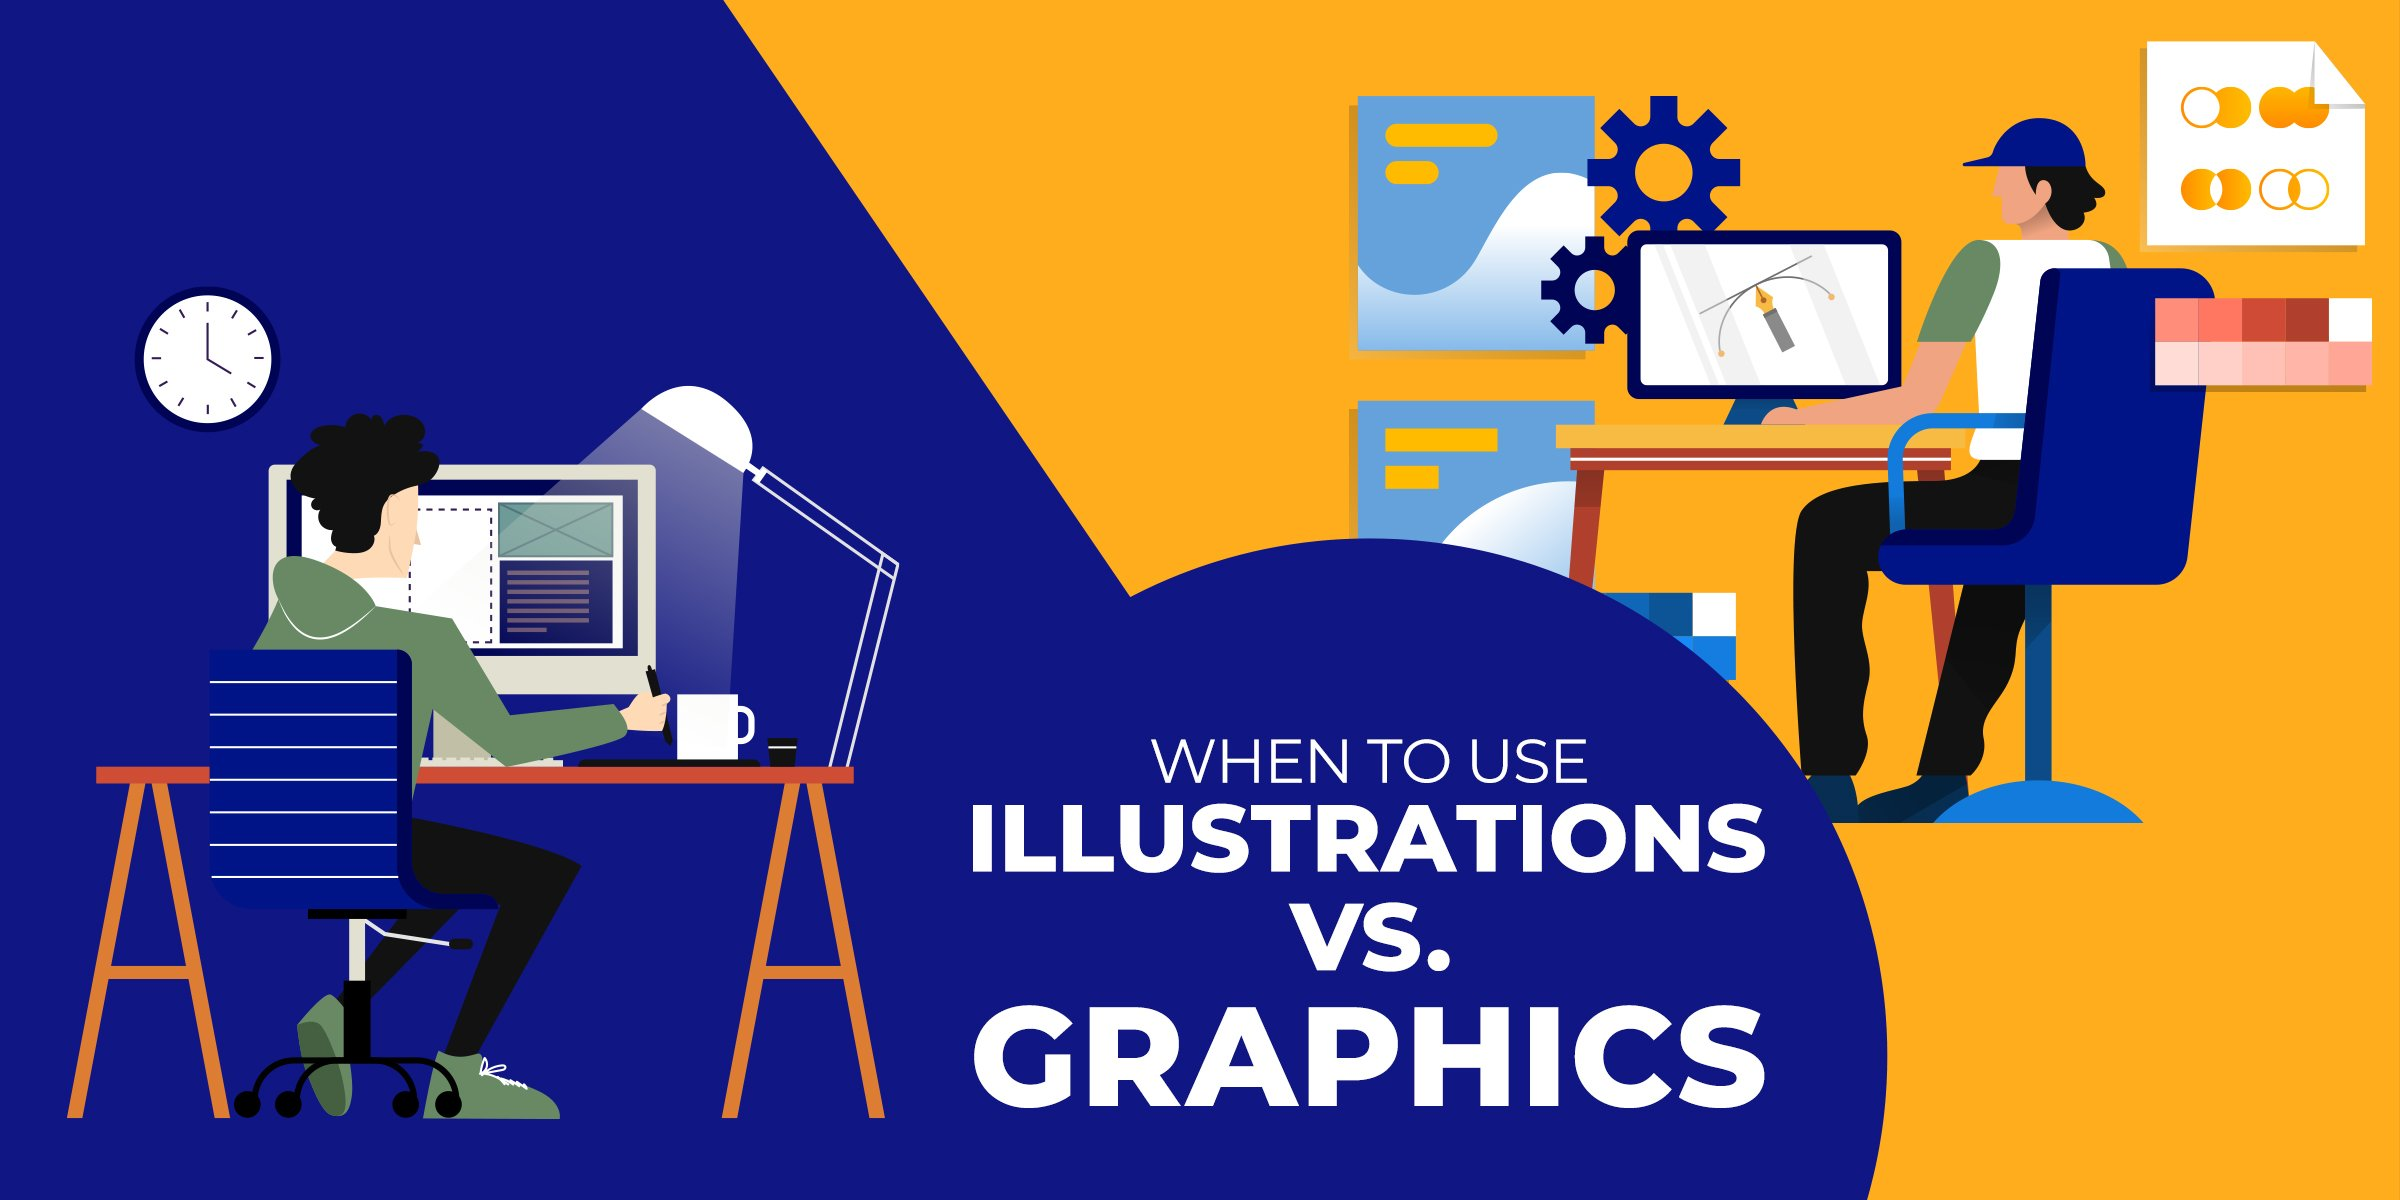 When to Use Illustrations vs Graphics